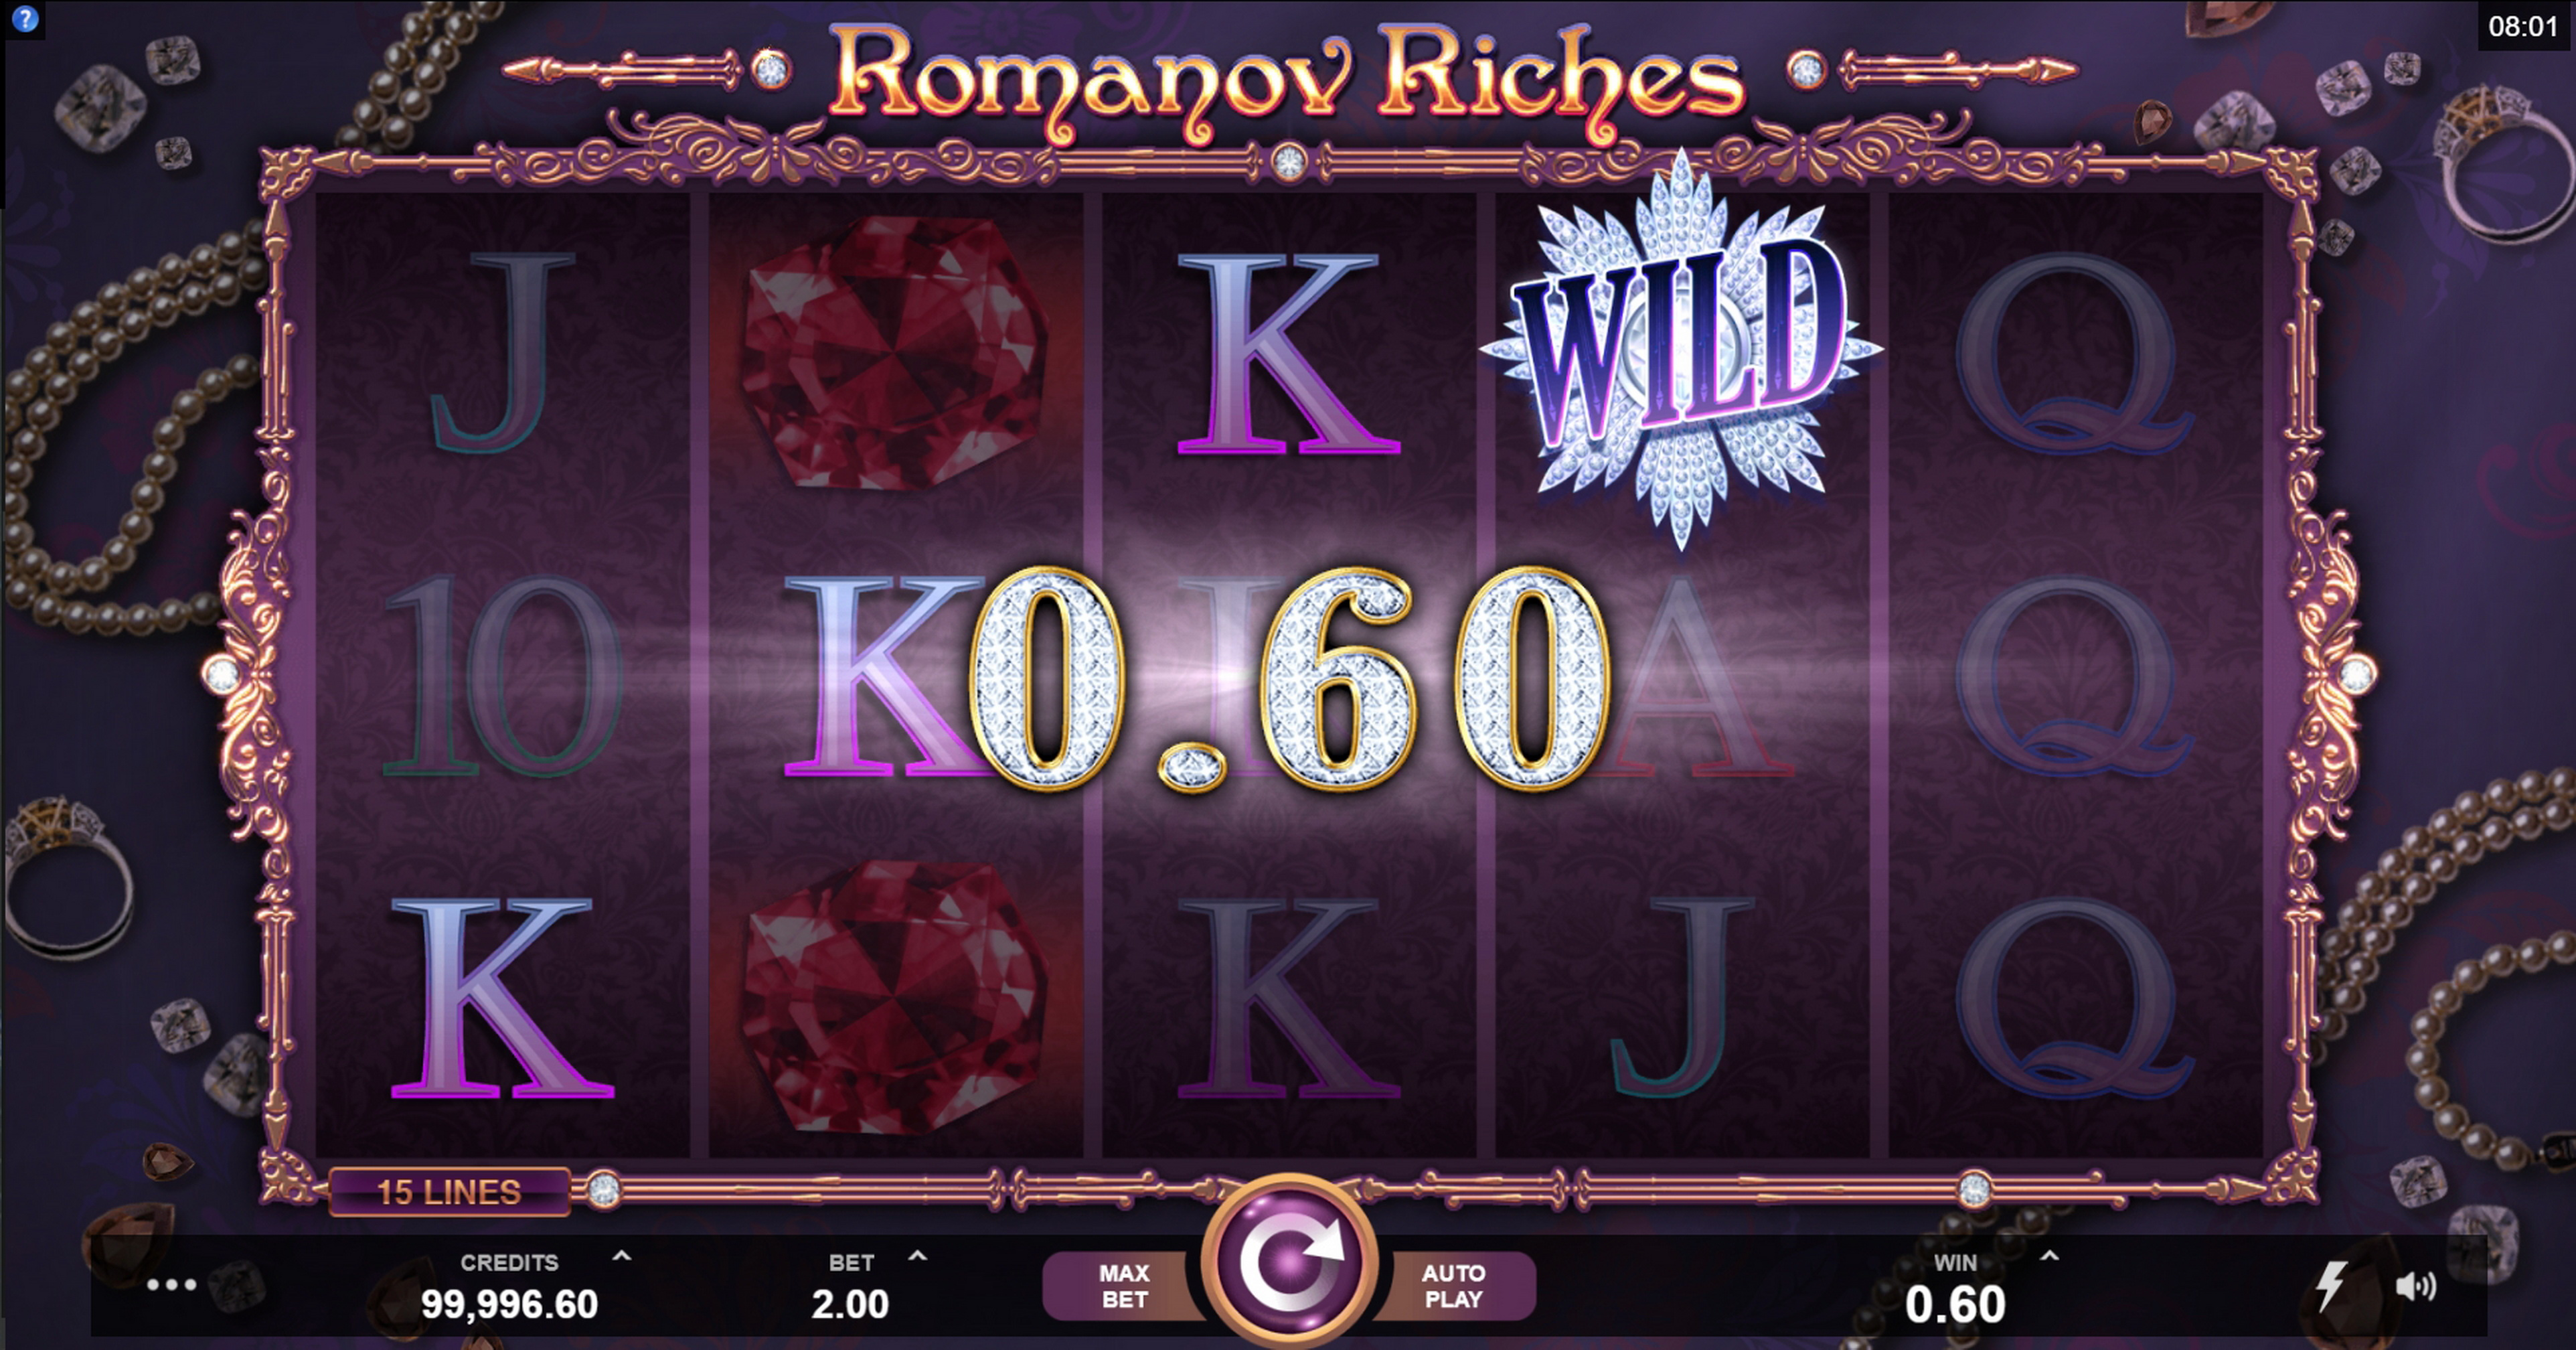 Win Money in Romanov Riches Free Slot Game by Fortune Factory Studios